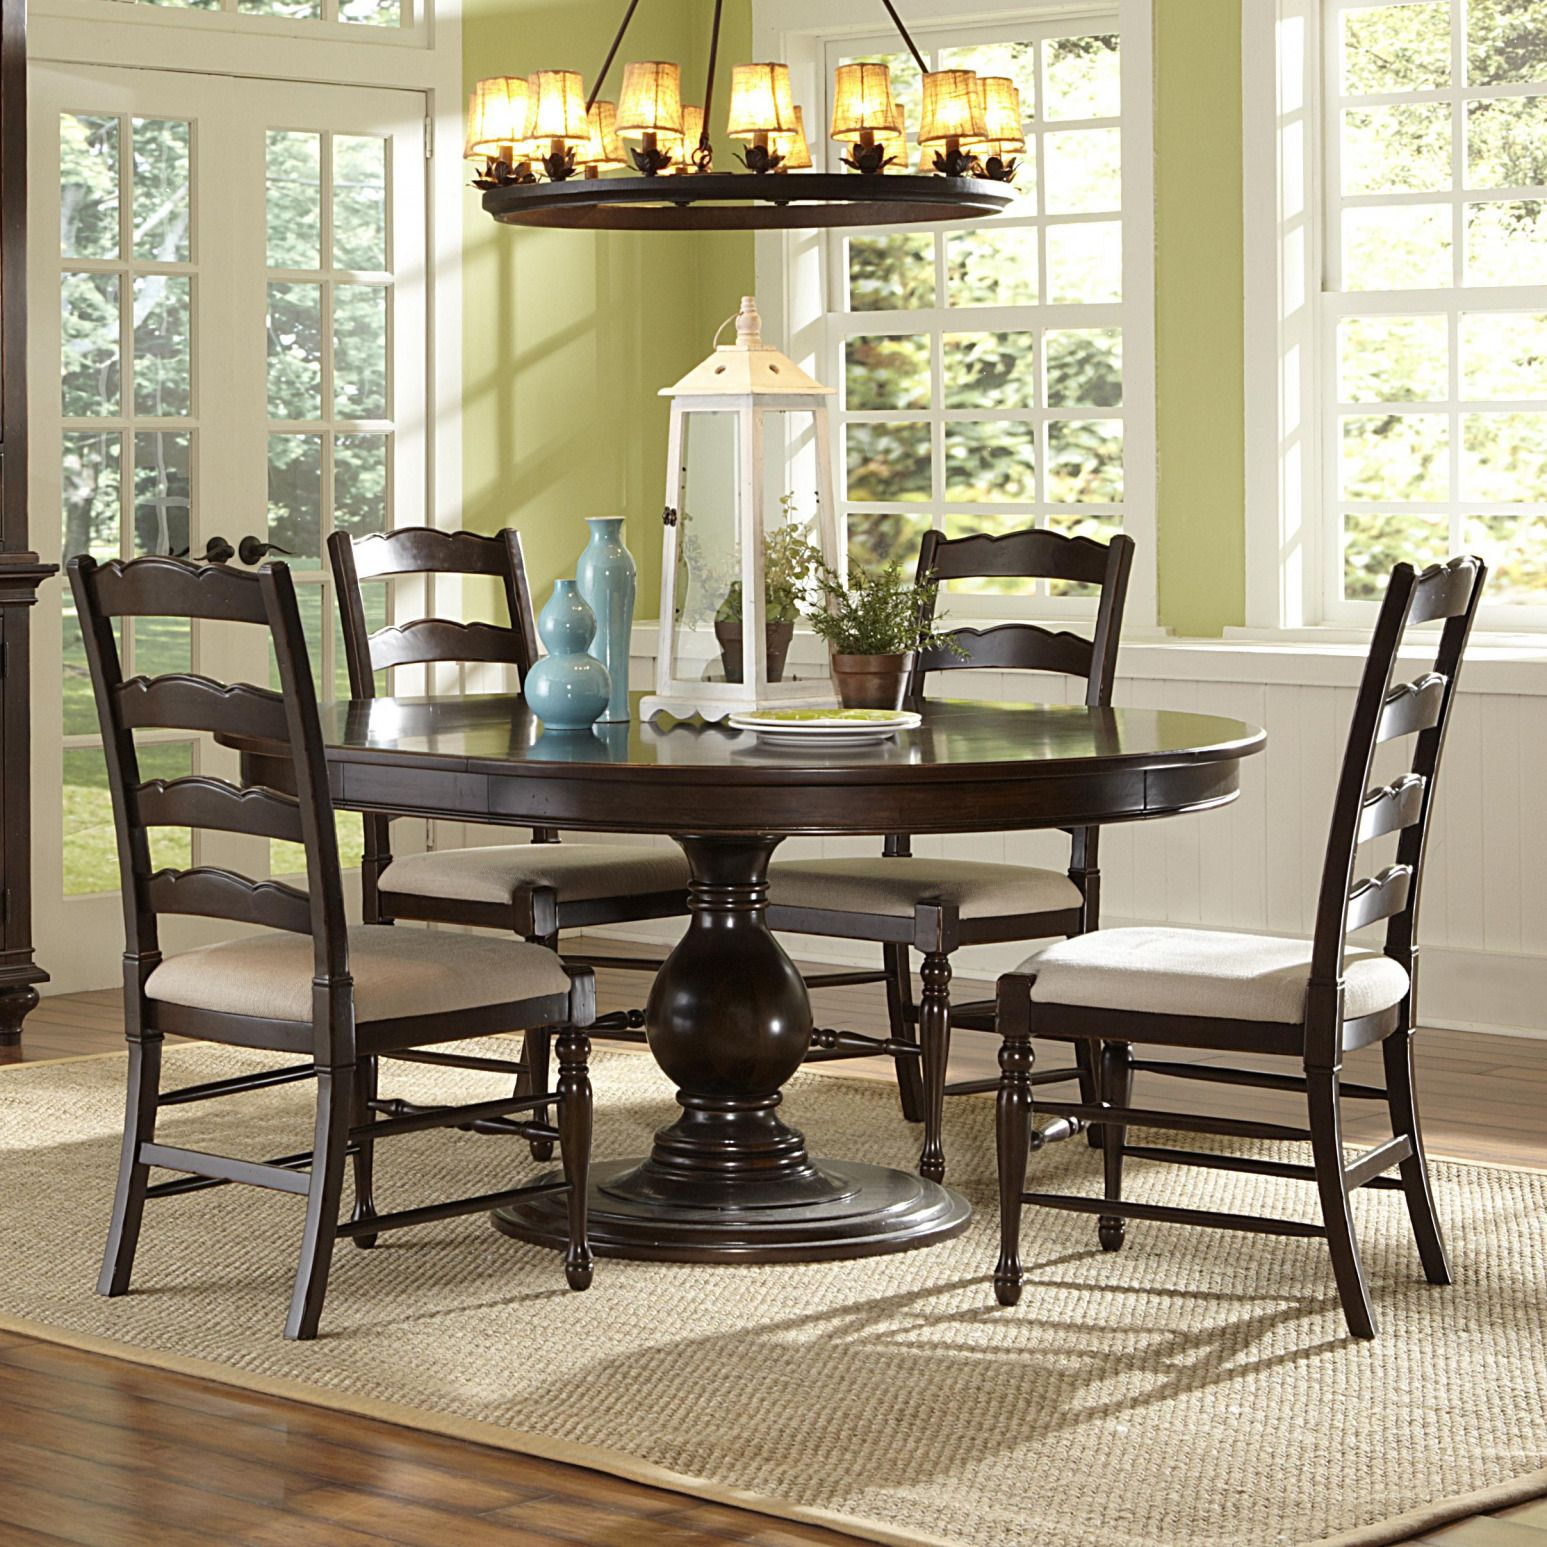 100 round table 5 chairs  best spray paint for wood